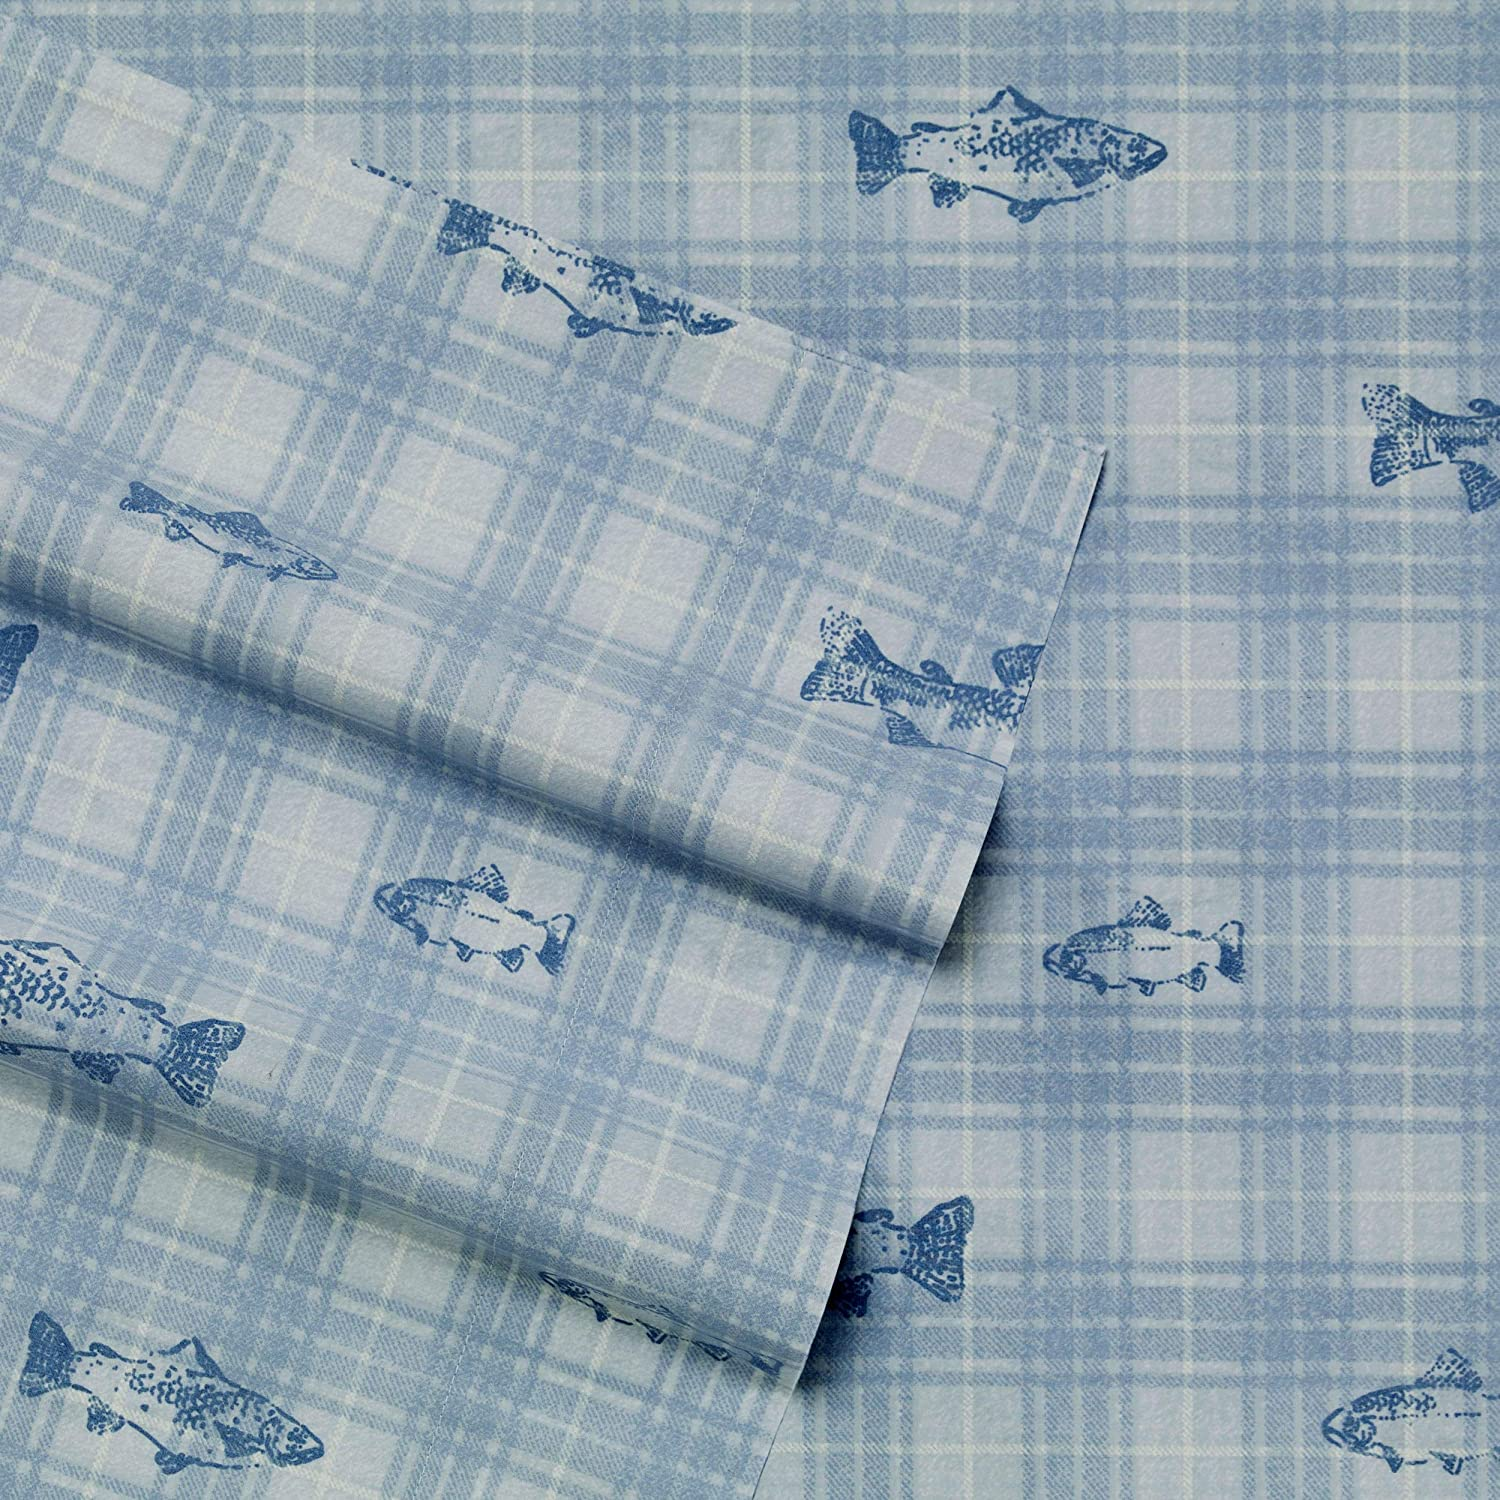 Eddie Bauer Home | Methow Collection | 100% Cotton Percale Plaid Sheet Set, 4-Piece Bedding Set, Cool Crisp & Light-Weight, Easy Care Machine WashableKingBlue